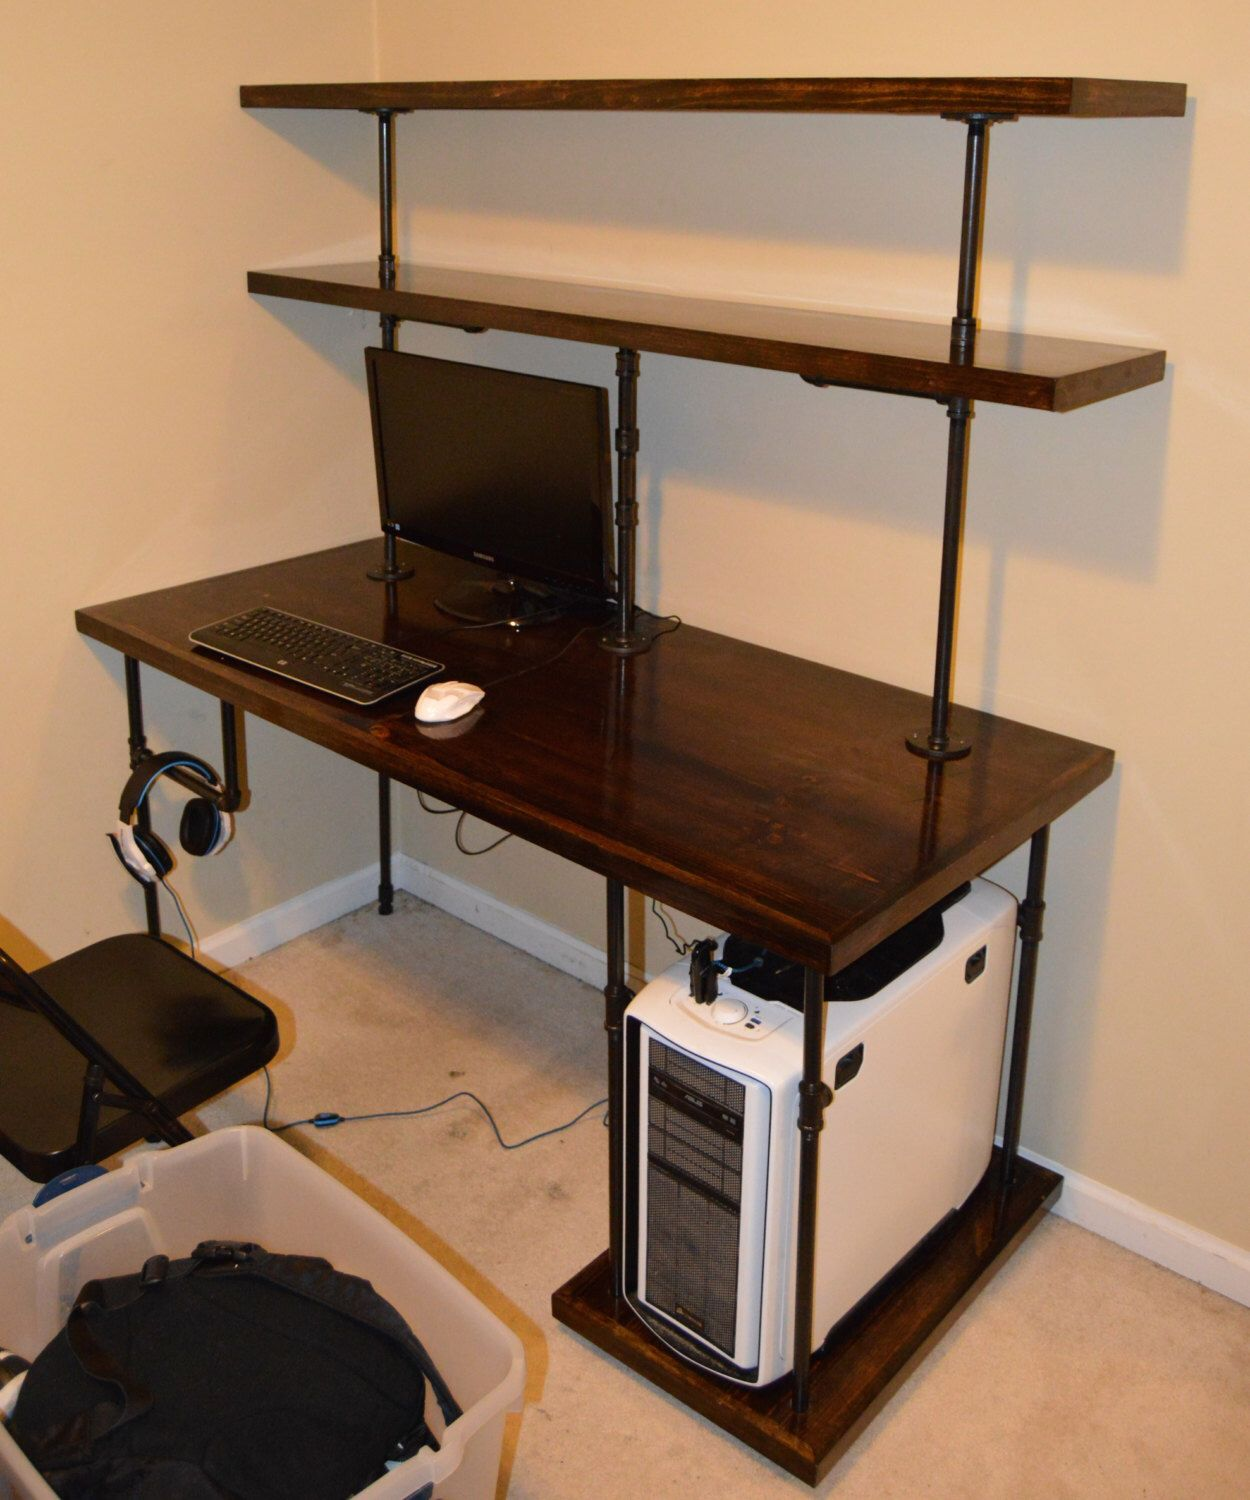 Home Computer Workstation Ideas 23 Diy Computer Desk Ideas That Make More Spirit Work